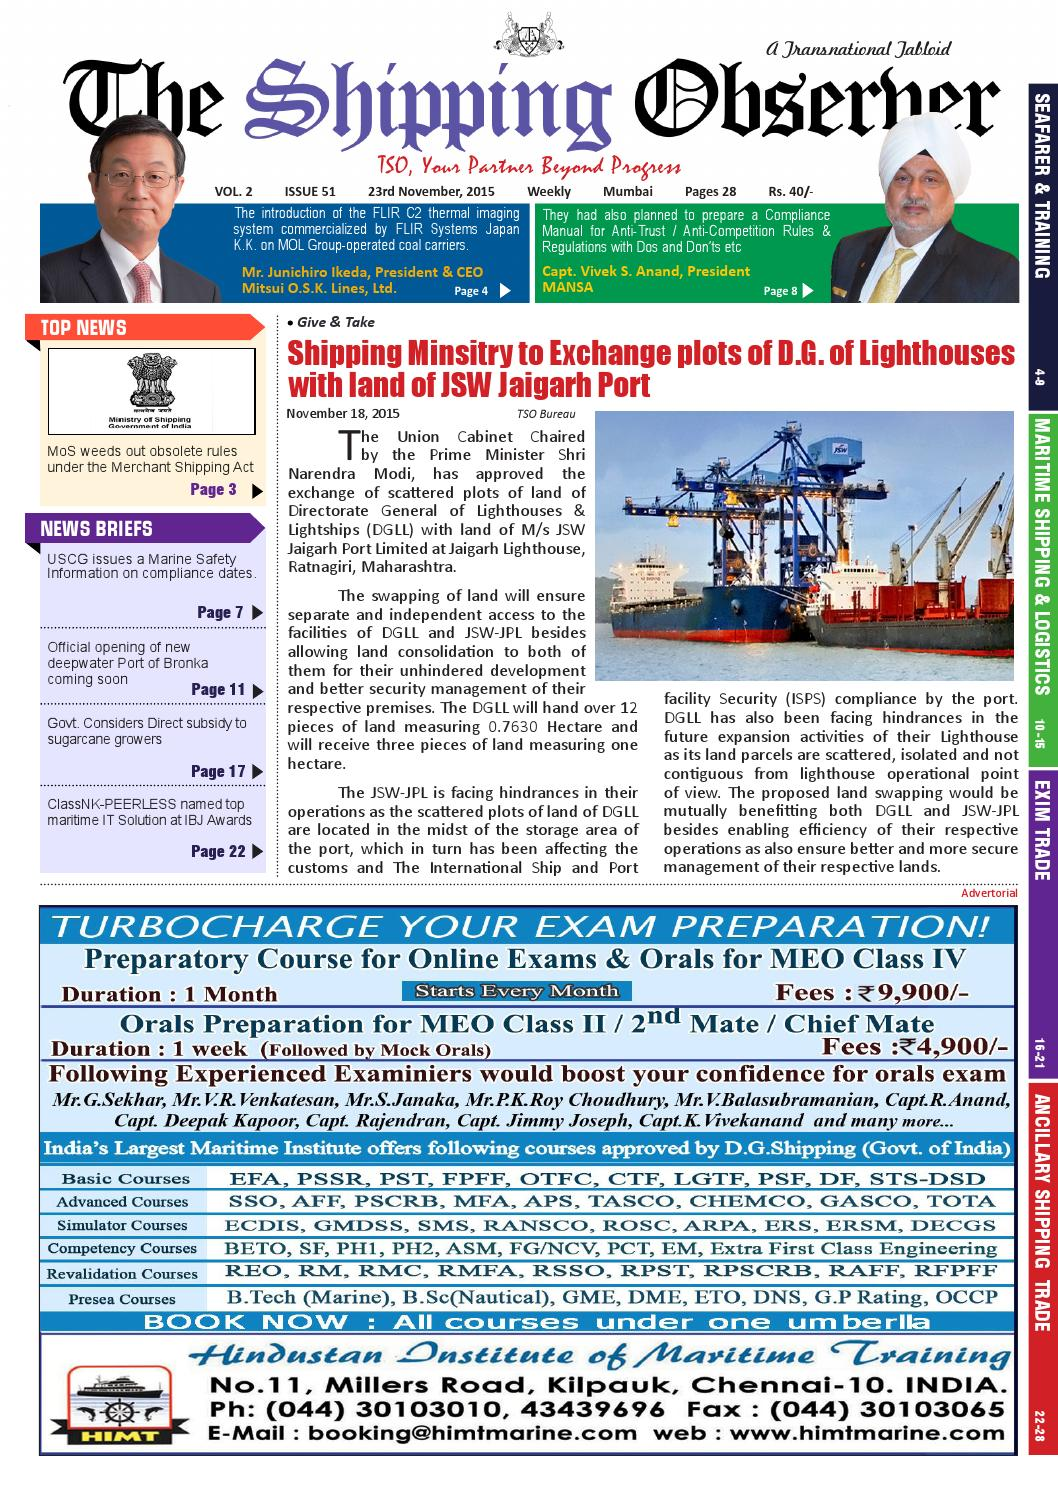 THE SHIPPING OBSERVER V2 issue51 23 11 15 by The Shipping